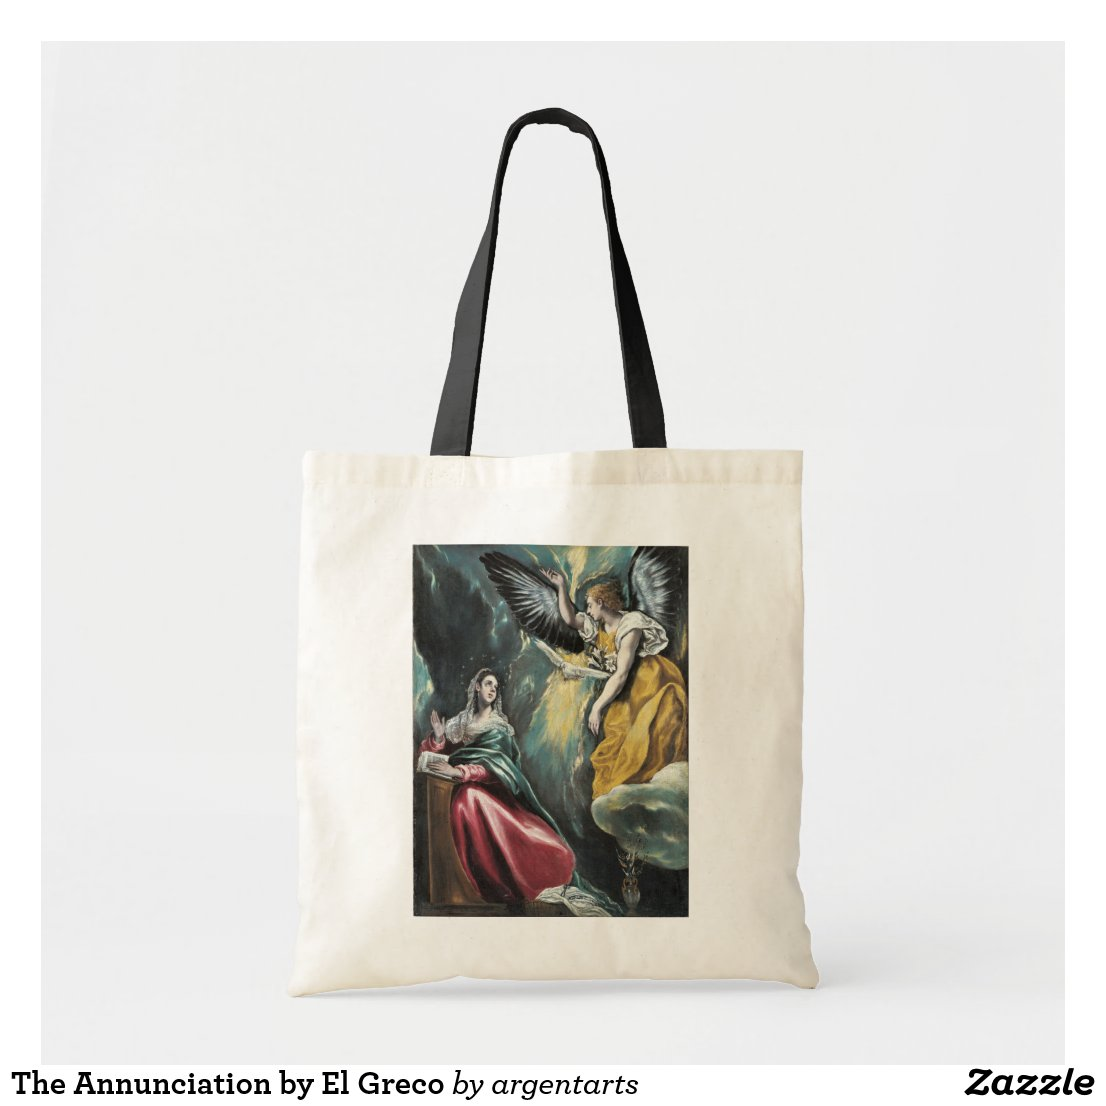 The Annunciation El Greco Tote #Bag  https://www.zazzle.com/the_annunciation_by_el_greco_grocery_tote_bag-149909970162137146?style=budgettote&color=natural_black&rf=238581041916875857 …pic.twitter.com/WcJzZTHuVG